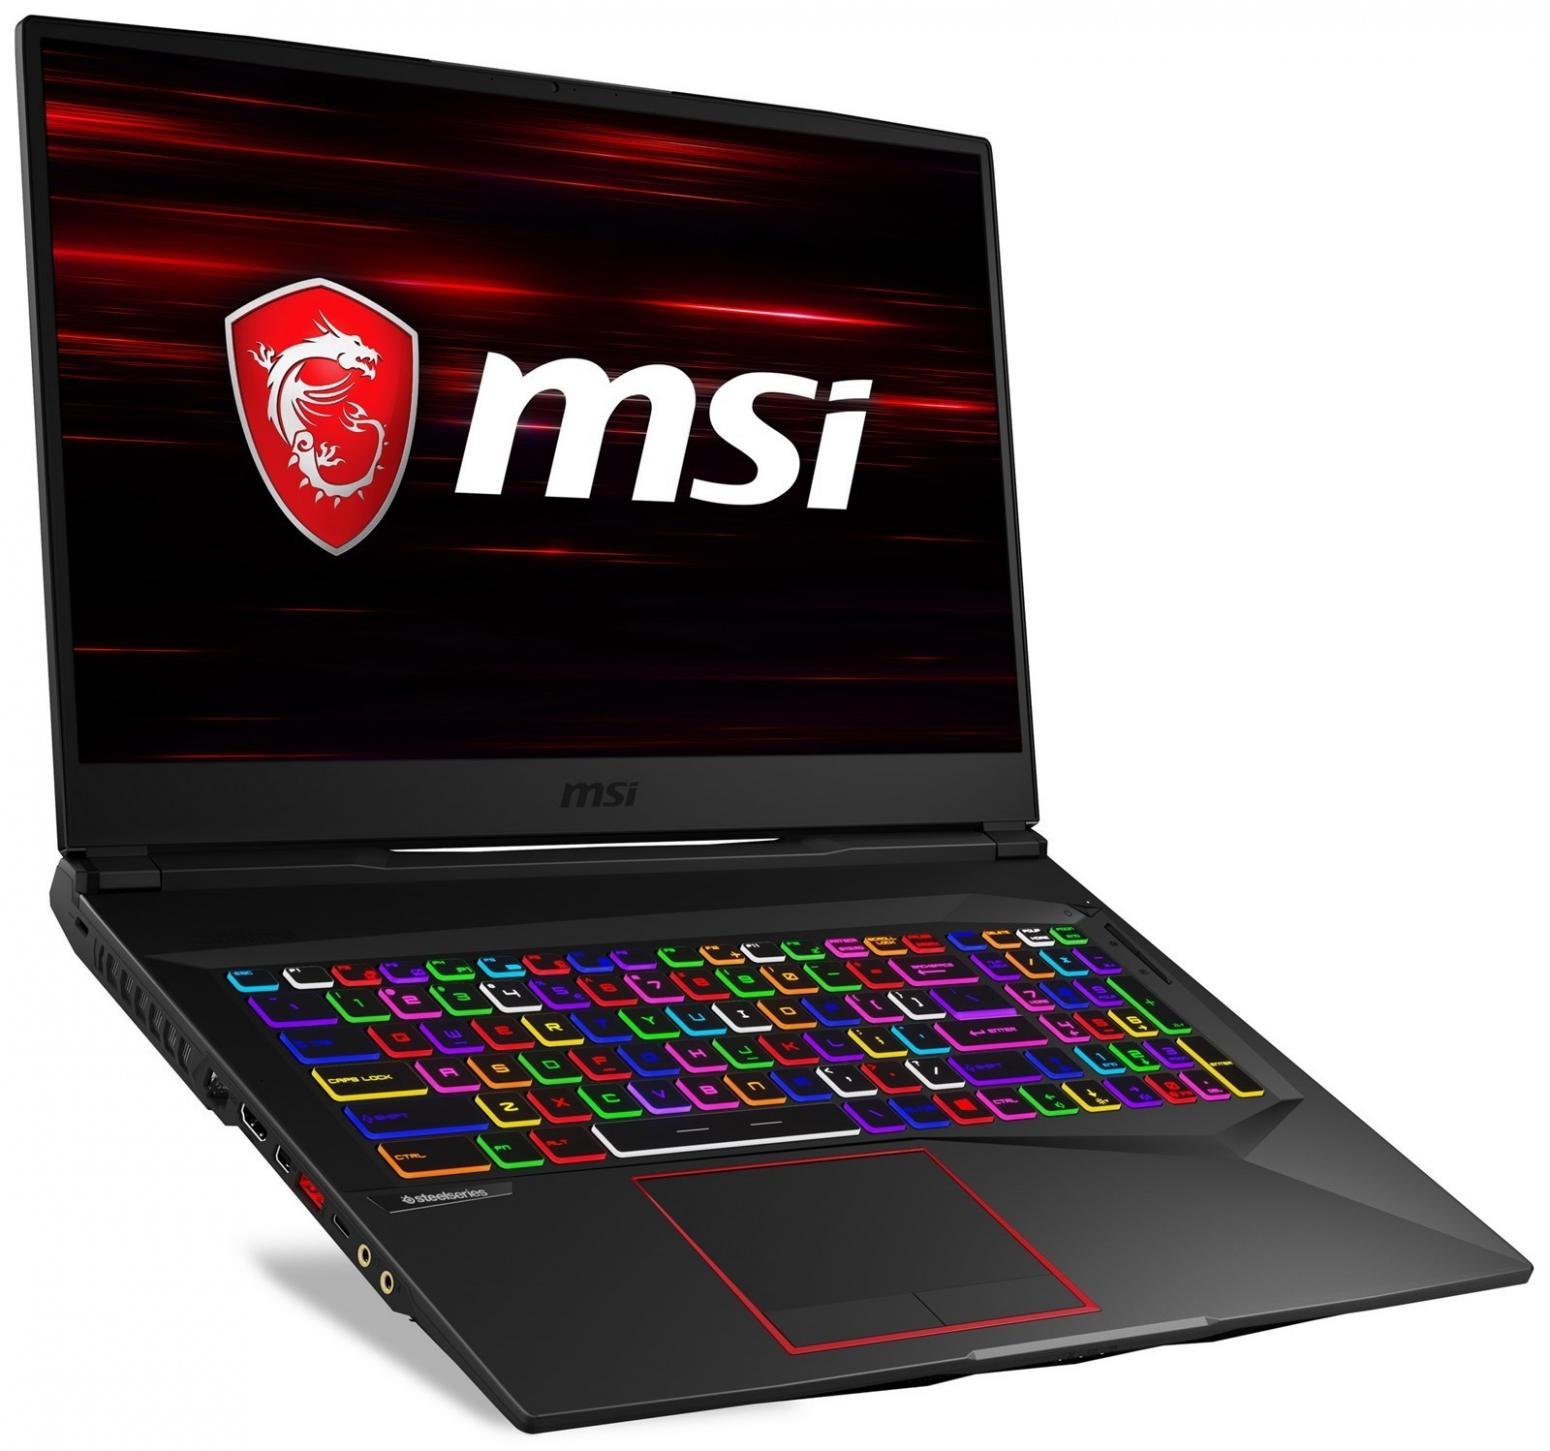 Image du PC portable MSI GE75 8SG-059FR Raider - RTX 2080, 144Hz